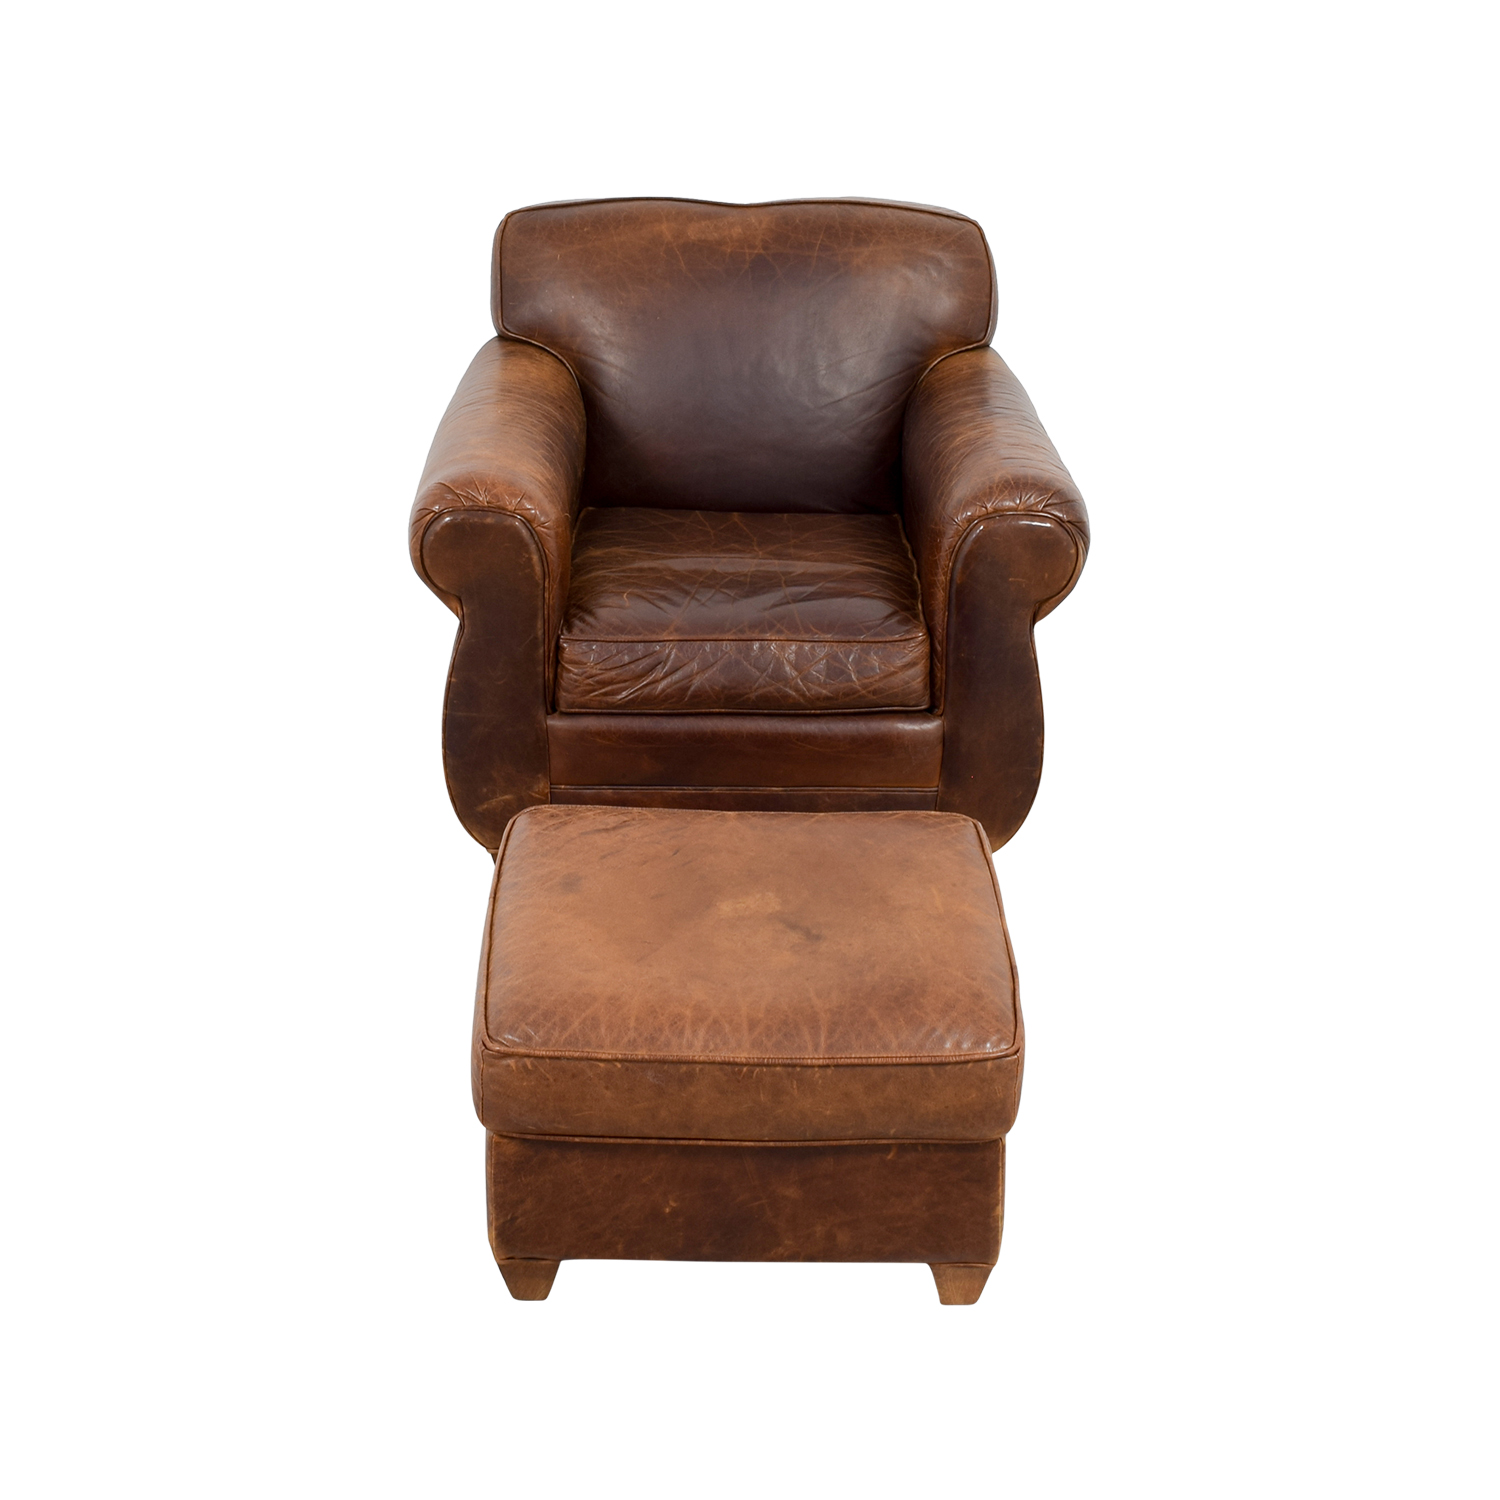 shop Restoration Hardware 1940s Moustache Leather Chair and Ottoman Restoration Hardware Chairs